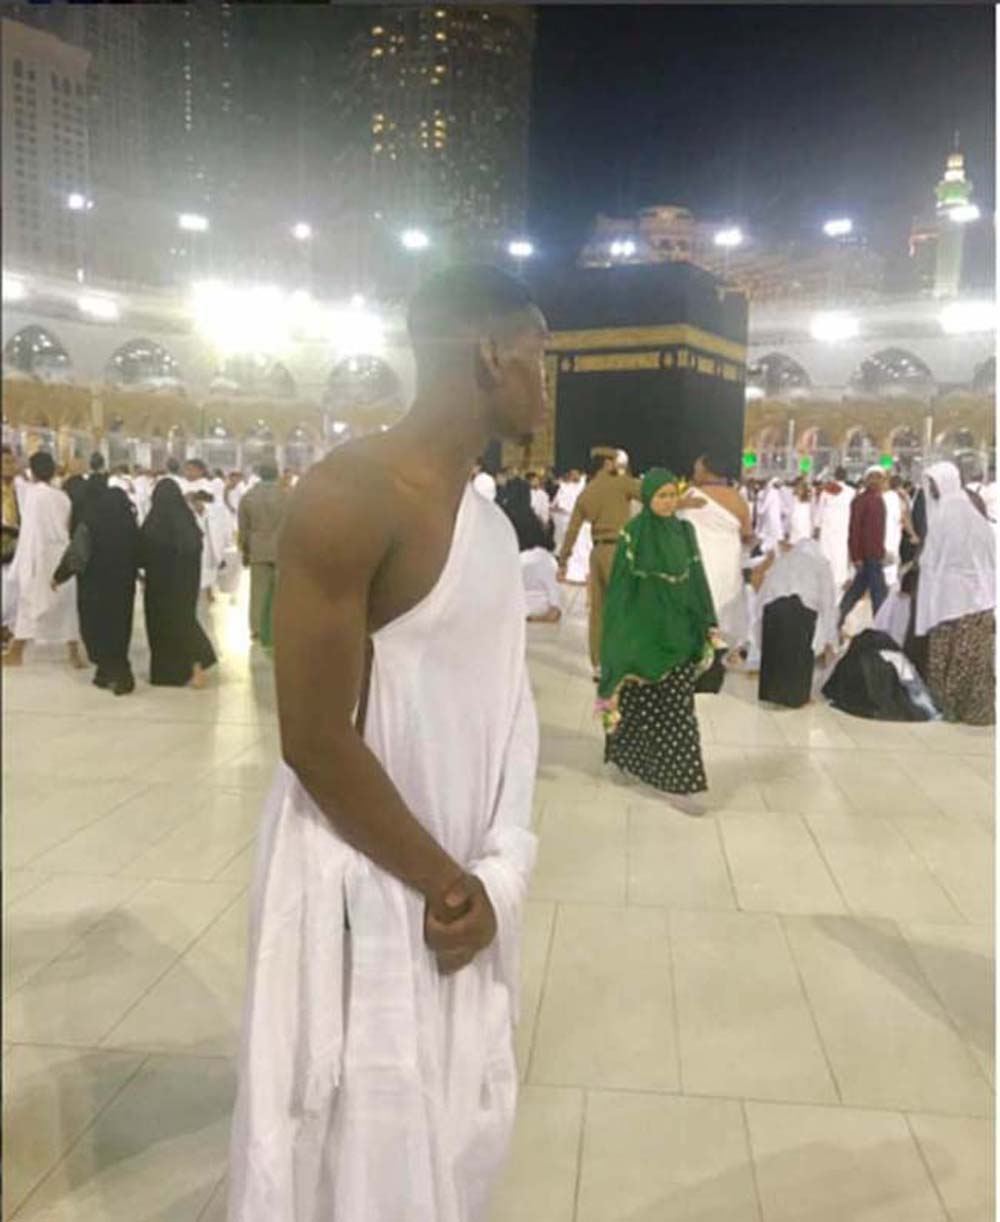 Pogba, world's most expensive footballer, performs Umrah